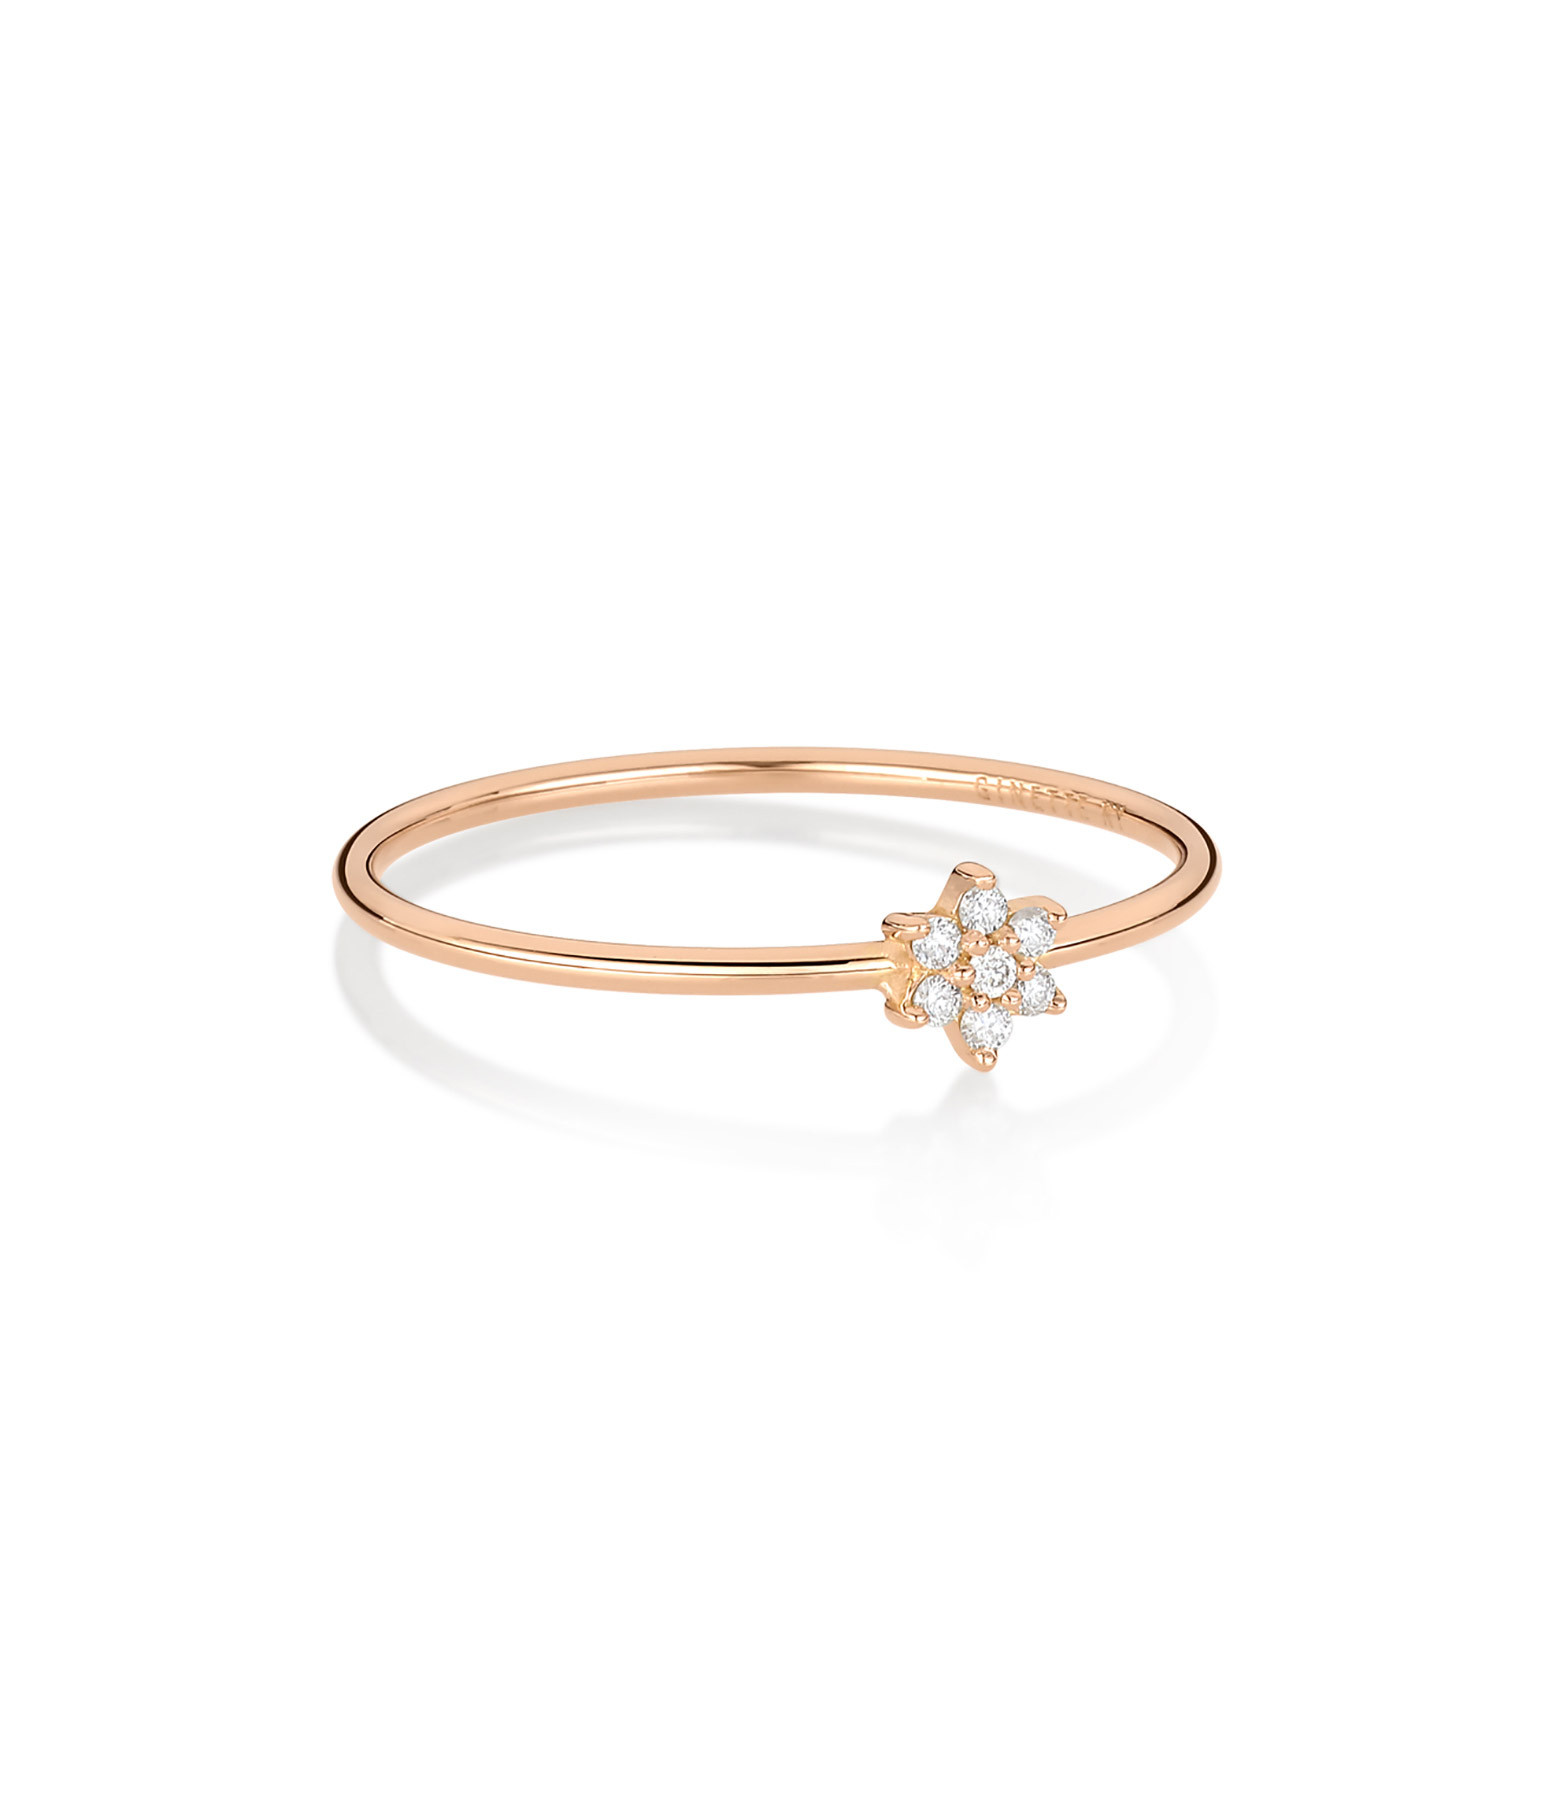 GINETTE NY - Bague Mini Star Diamants Or Rose